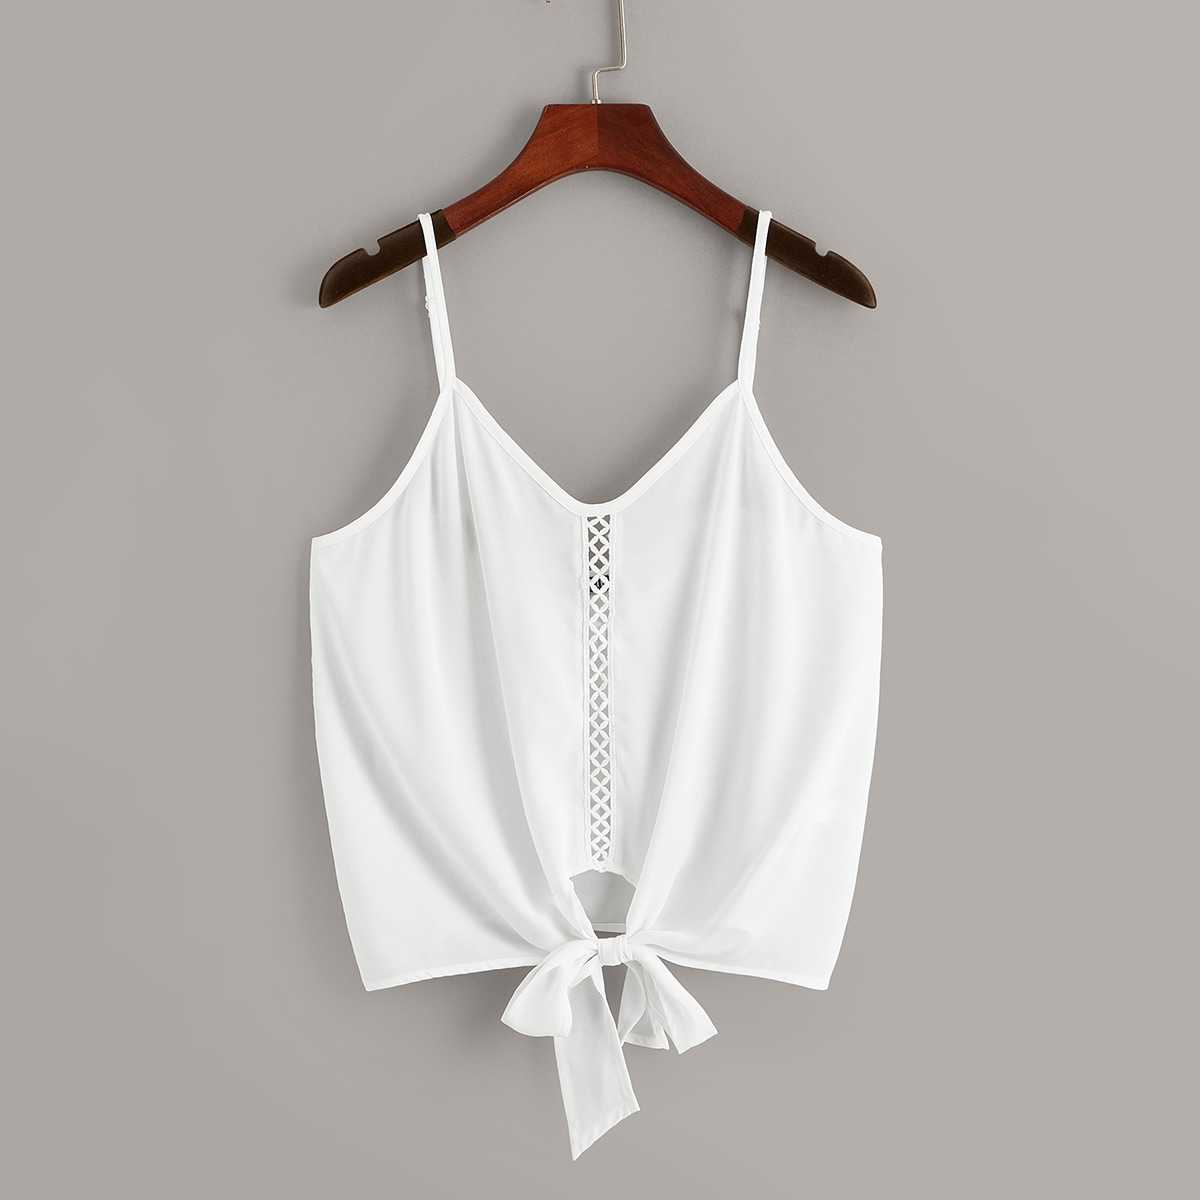 Lace Insert Knot Hem Cami Top in White by ROMWE on GOOFASH